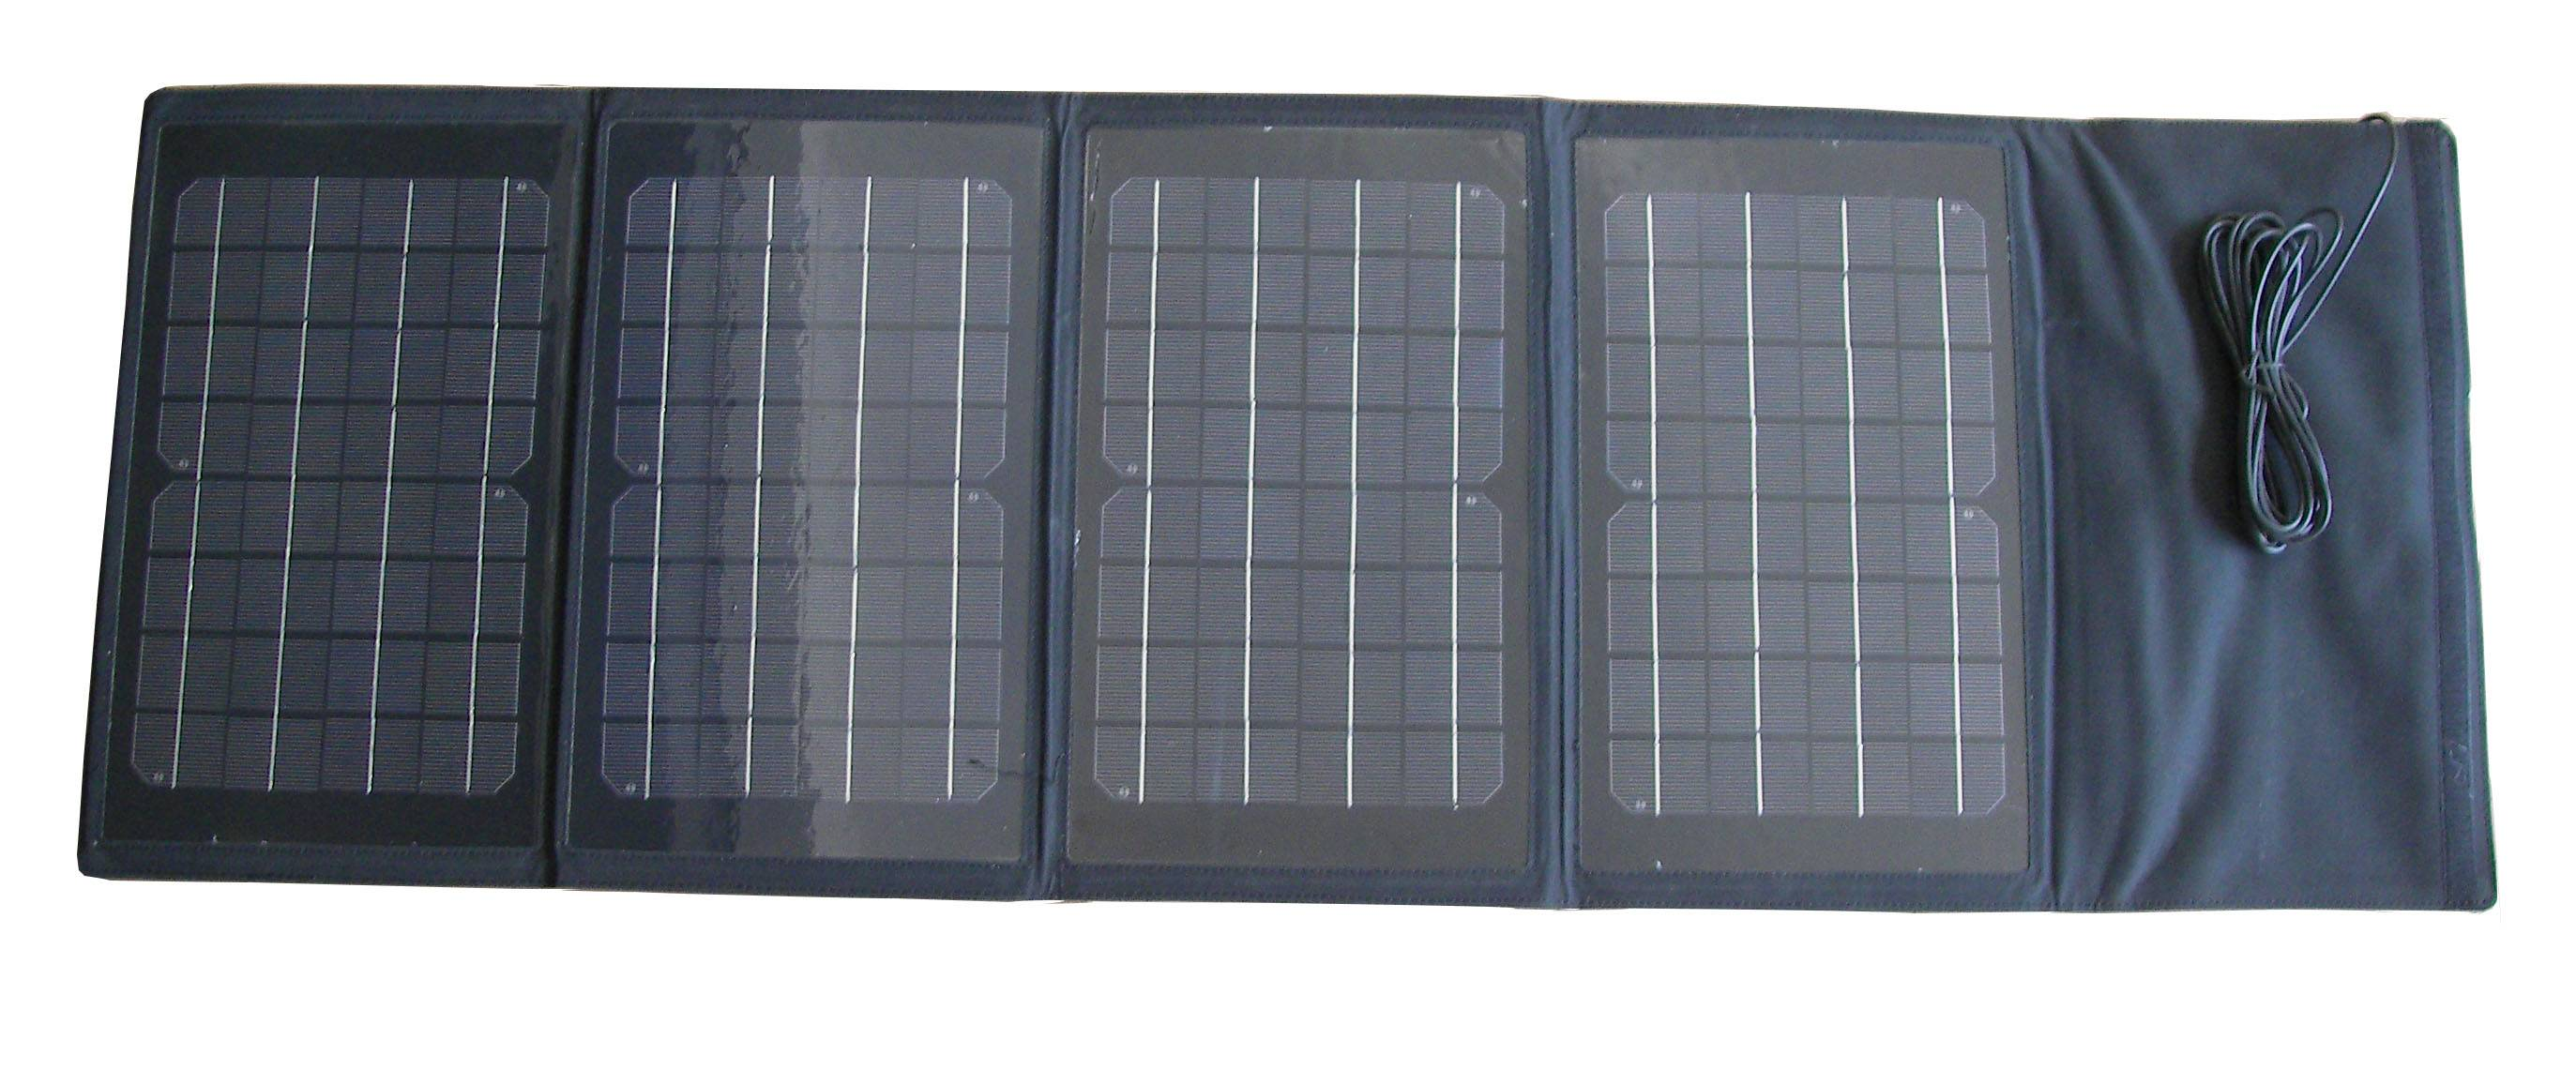 40W Folding Portable Solar Panel Charger Bag for Laptop, Mobile Phone, iPhone 5 4 4s, MP3, MP4, iPad